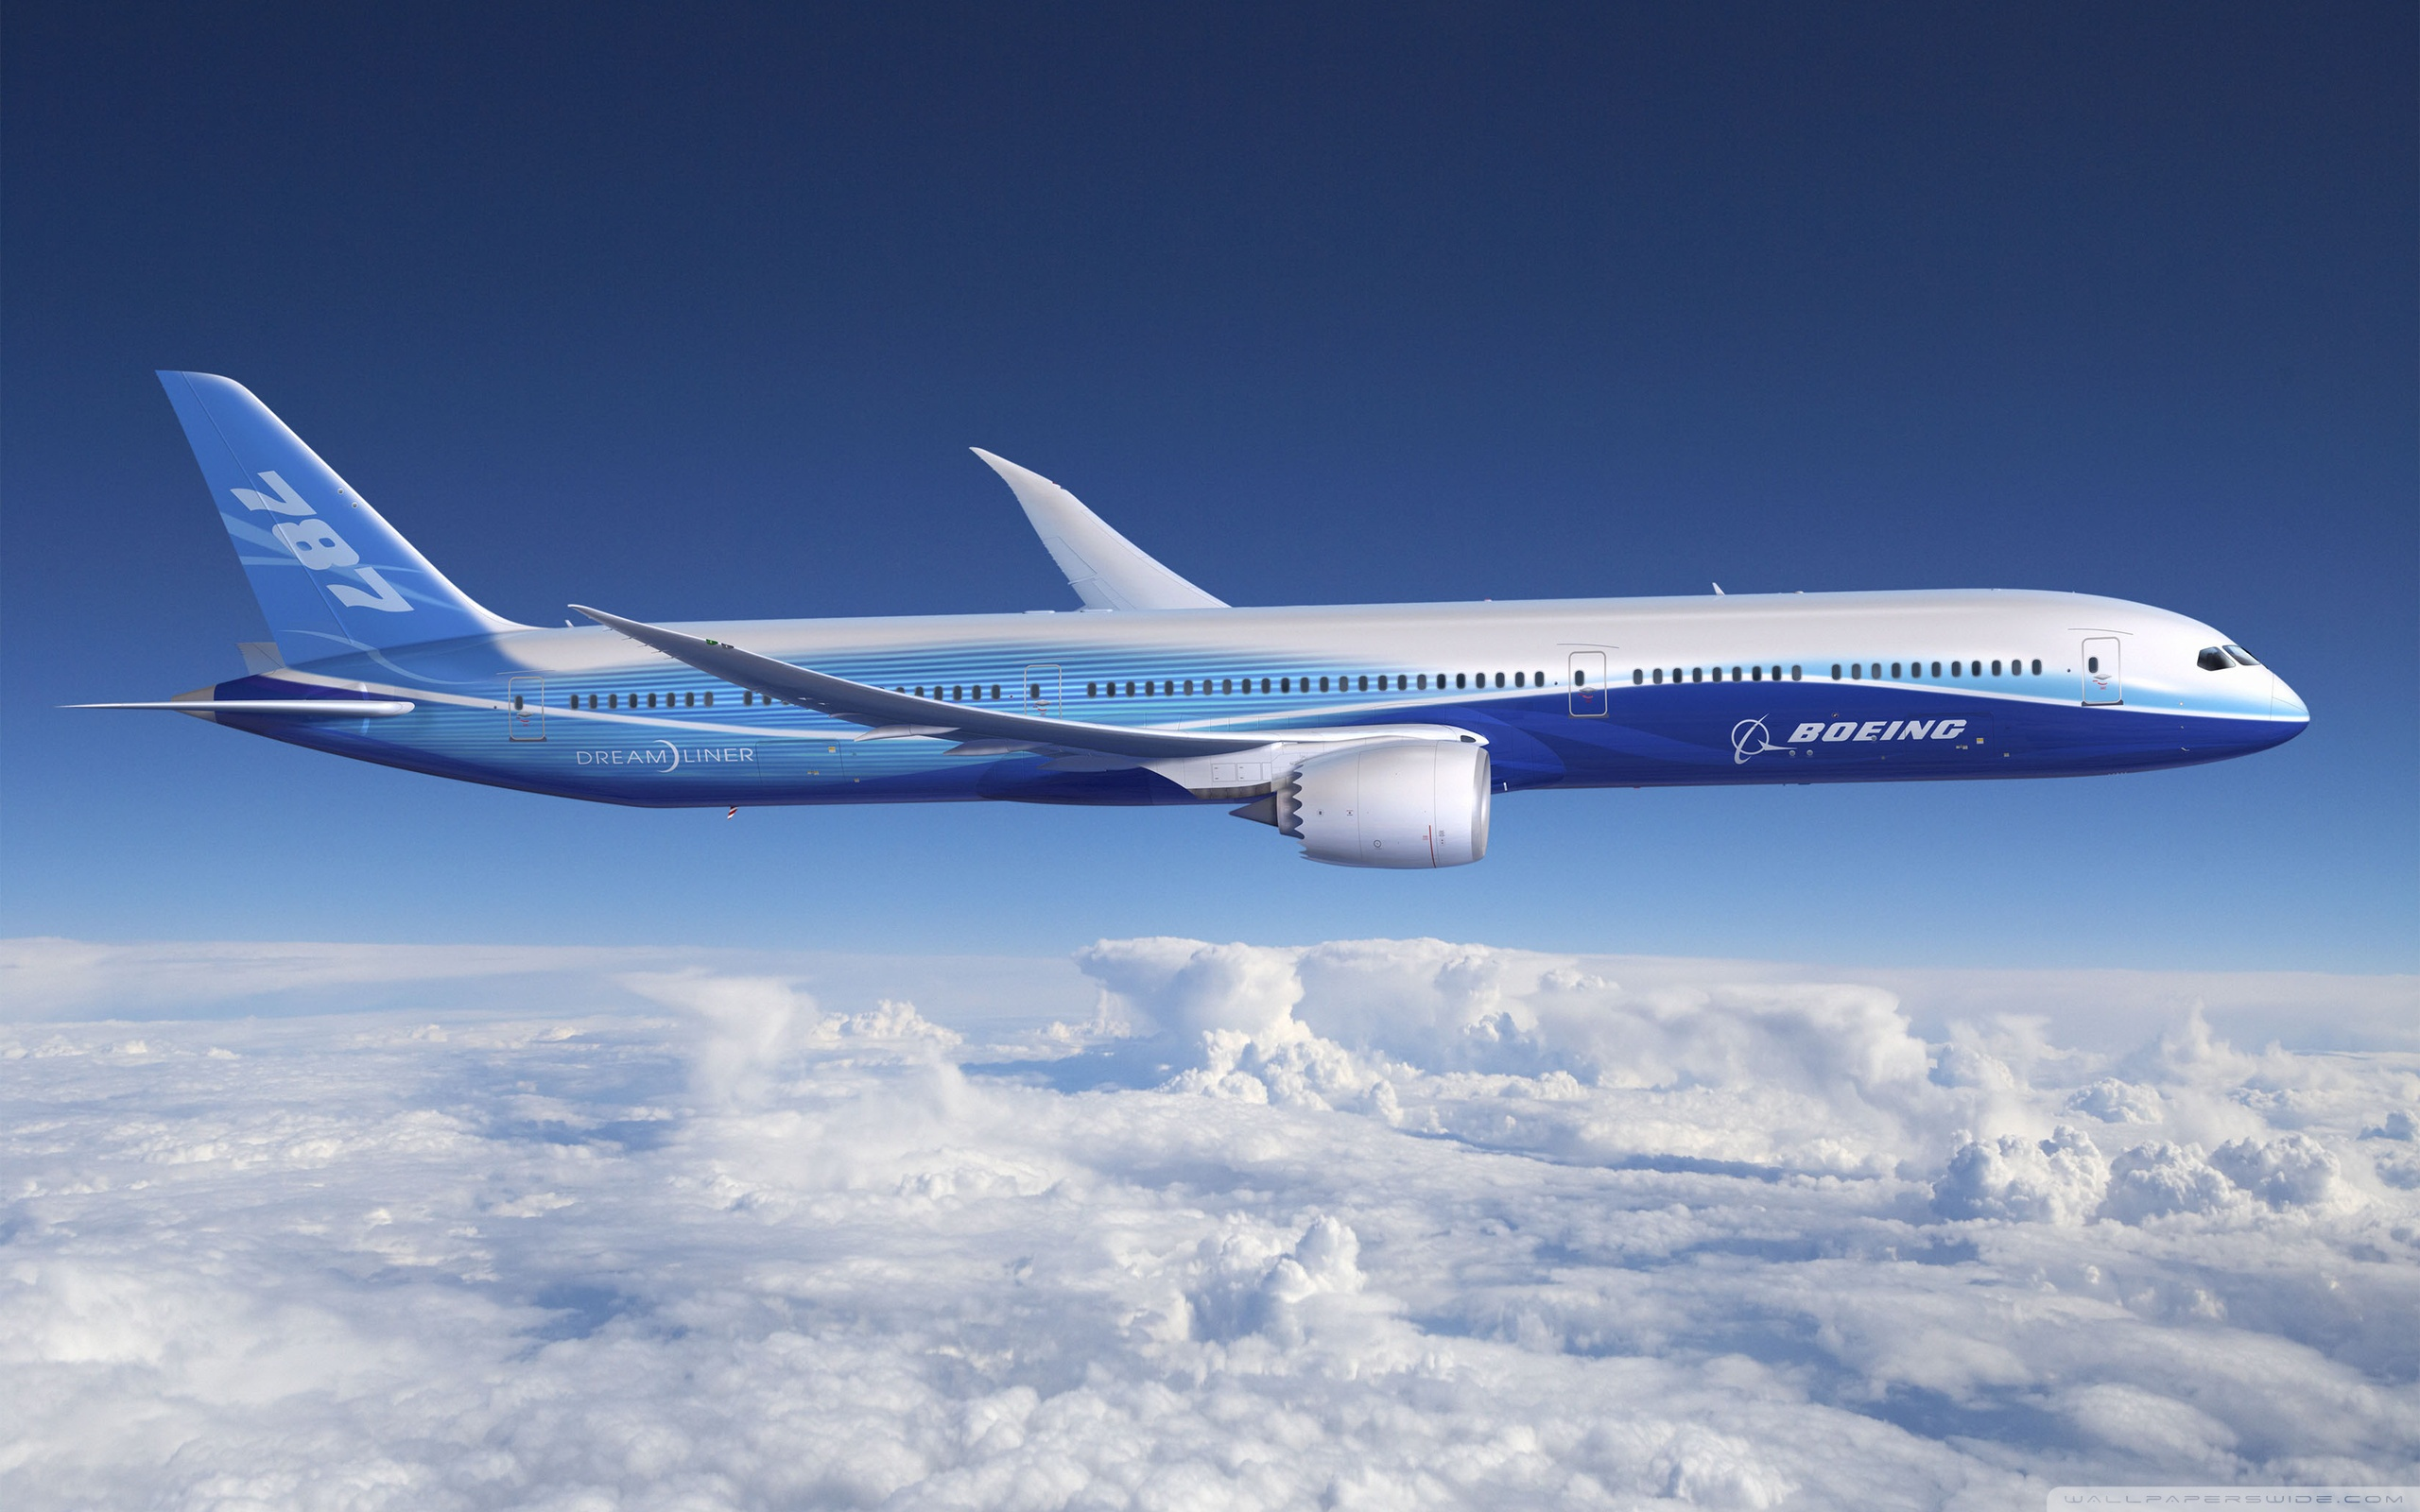 boeing_787_dreamliner-wallpaper-2560x1600.jpg